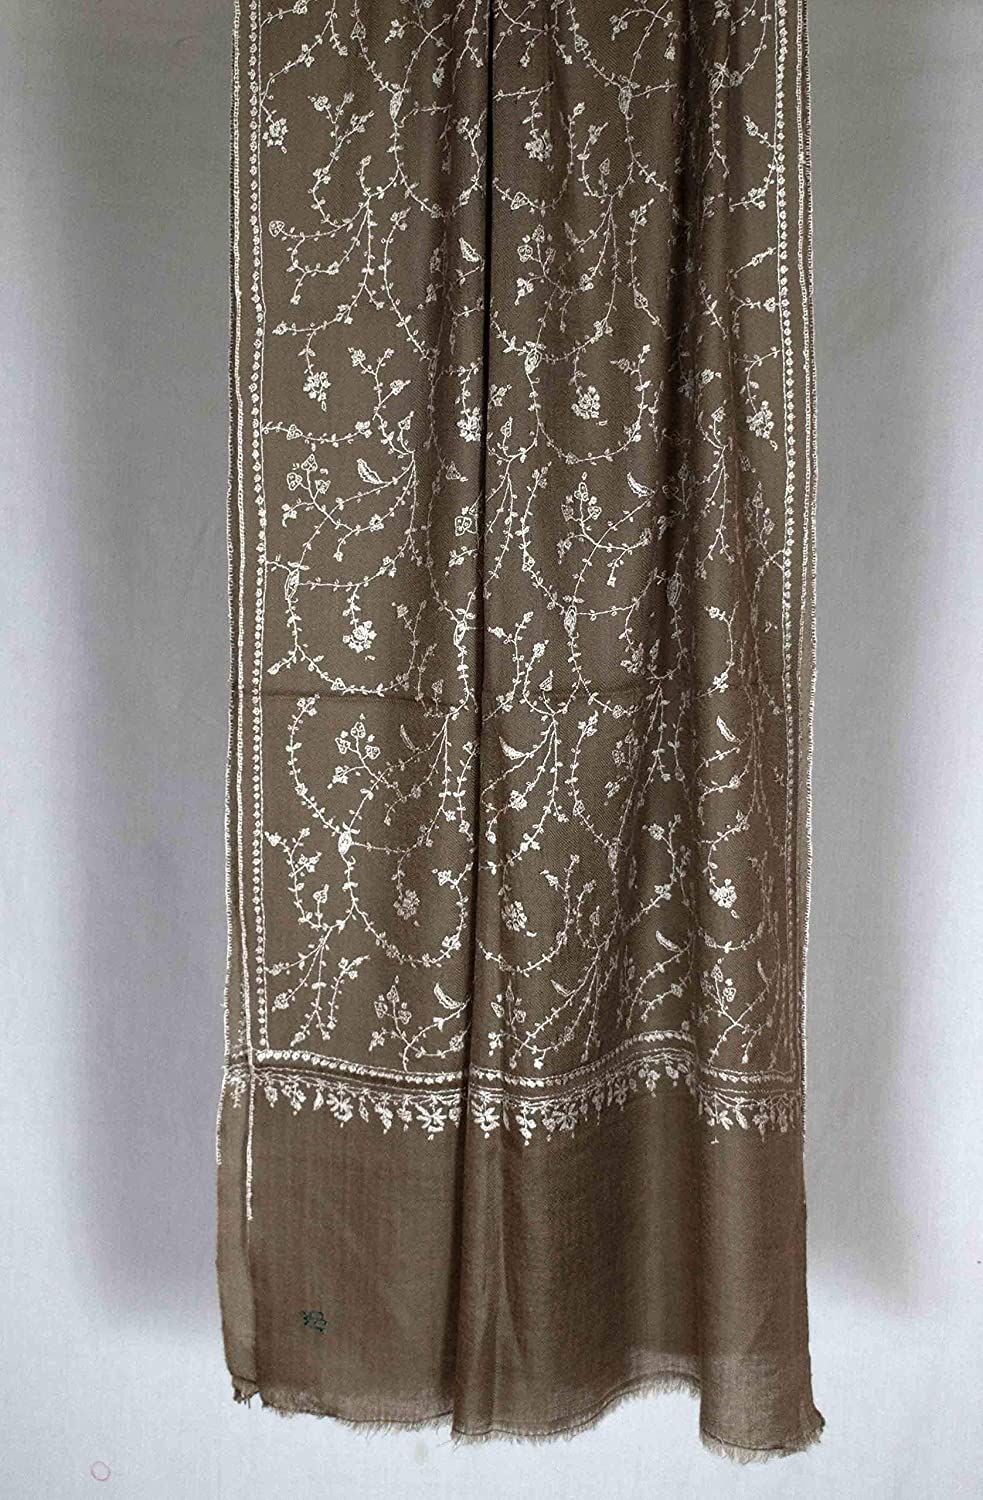 Limited time sale Mitti Pure Pashmina 2021 model Cashmere Scarf Wrap Handwoven on Jali Hand